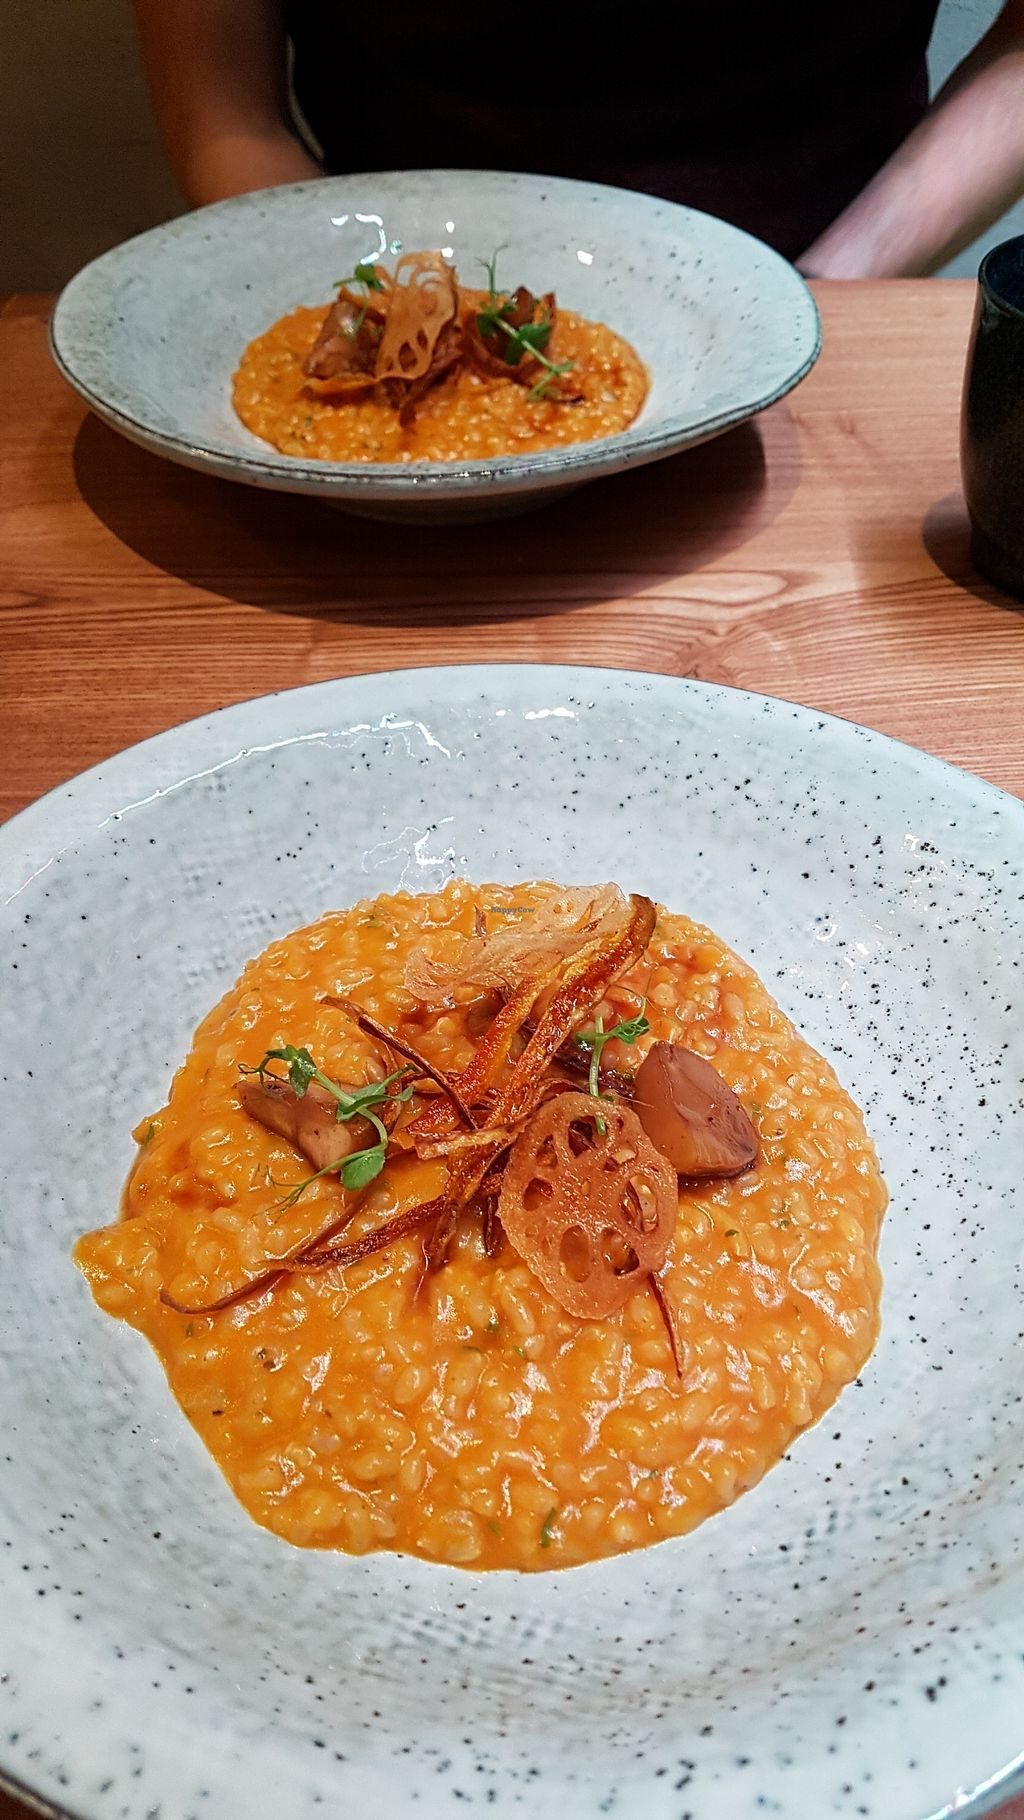 "Photo of Naturalead  by <a href=""/members/profile/SomethingVegan"">SomethingVegan</a> <br/>Pumpkin risotto <br/> January 1, 2018  - <a href='/contact/abuse/image/101801/341764'>Report</a>"